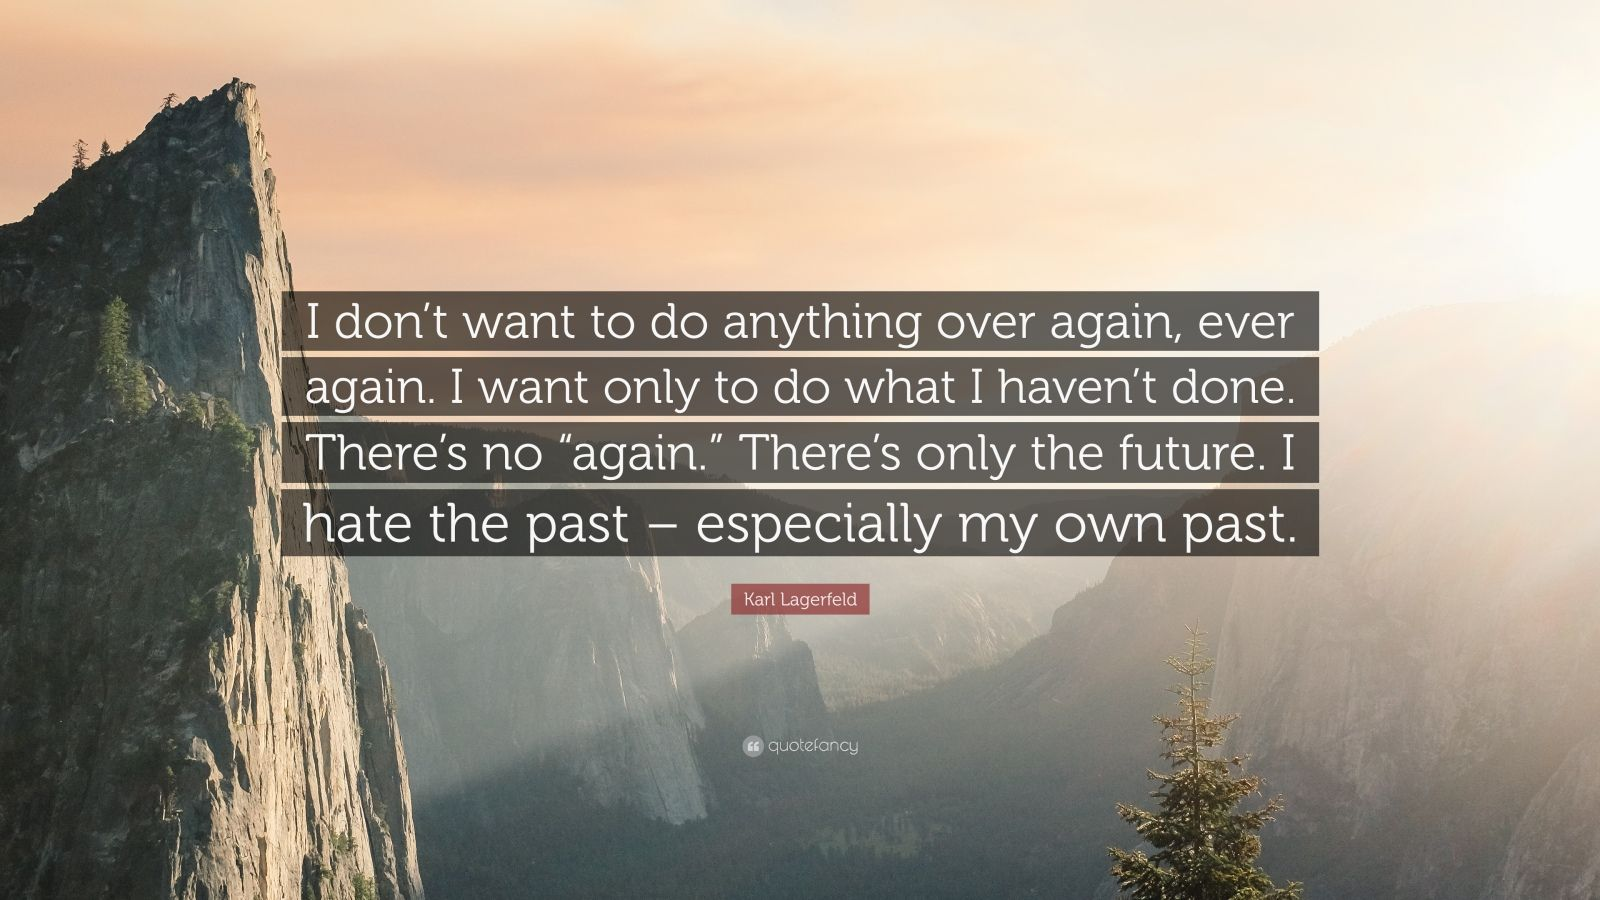 """Karl Lagerfeld Quote: """"I don't want to do anything over again, ever again. I want only to do what I haven't done. There's no """"again."""" There's only the future. I hate the past – especially my own past."""""""